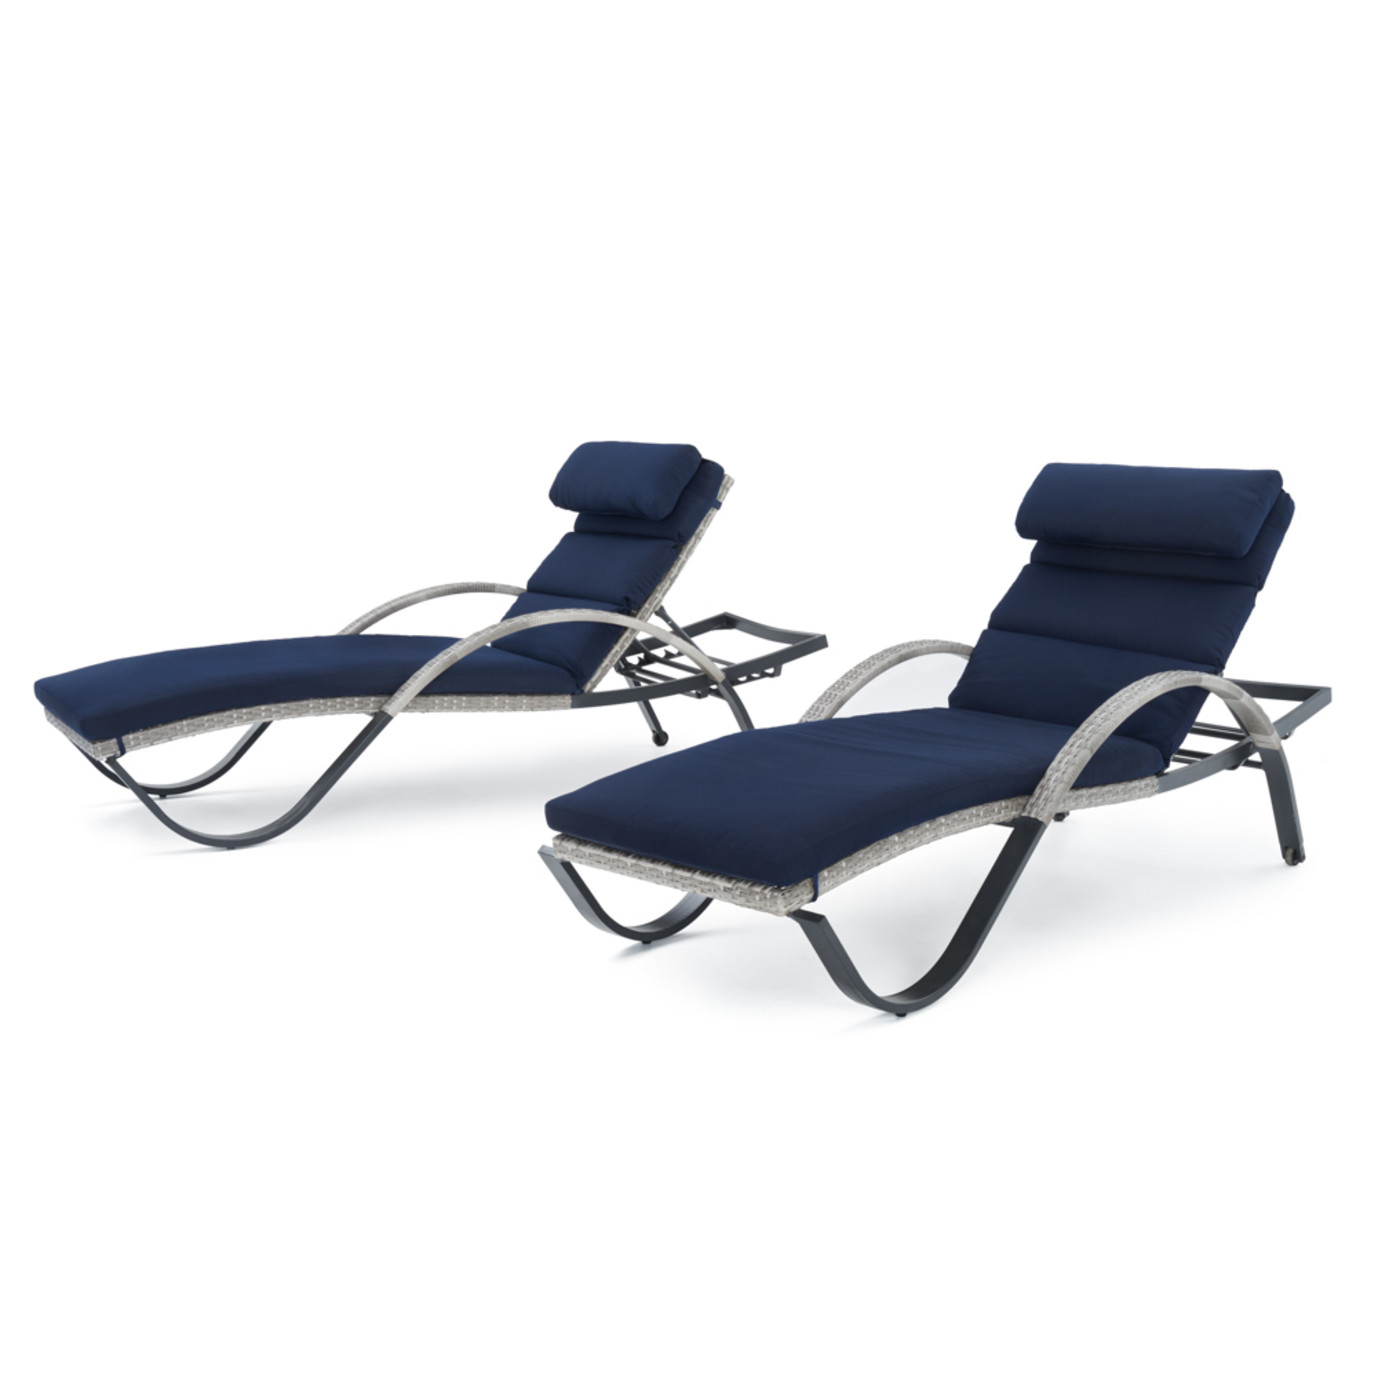 Cannes chaise lounges with cushion and pillow navy blue rst brands - Blue velvet chaise lounge ...